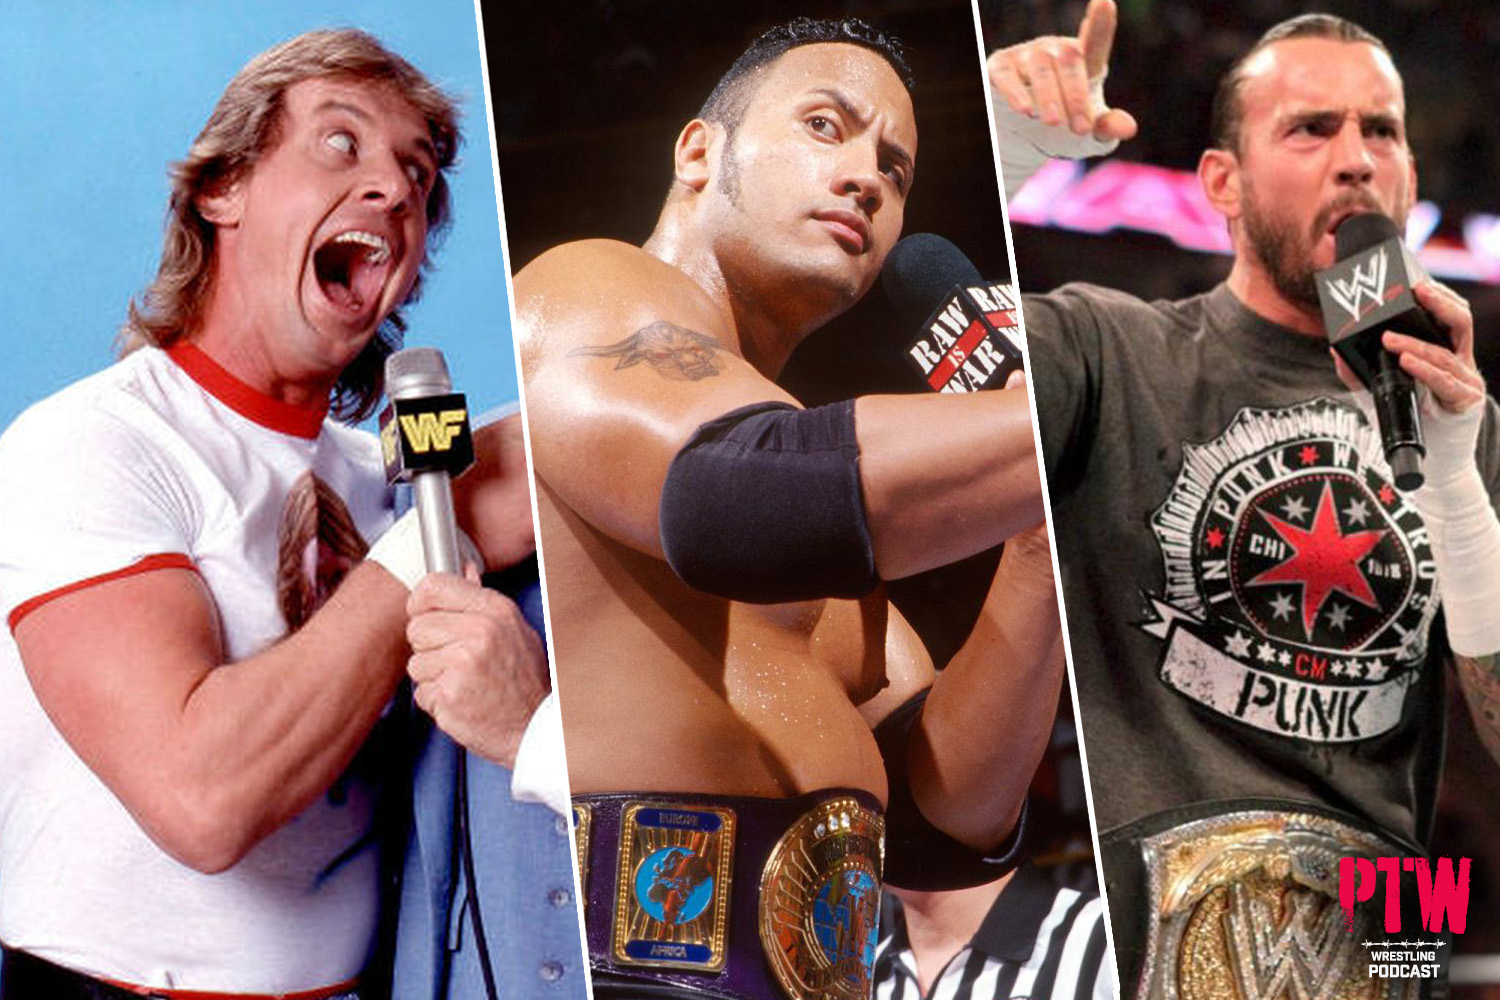 PTW Wrestling Podcast episode 155: Top 10 Talkers in WWE History